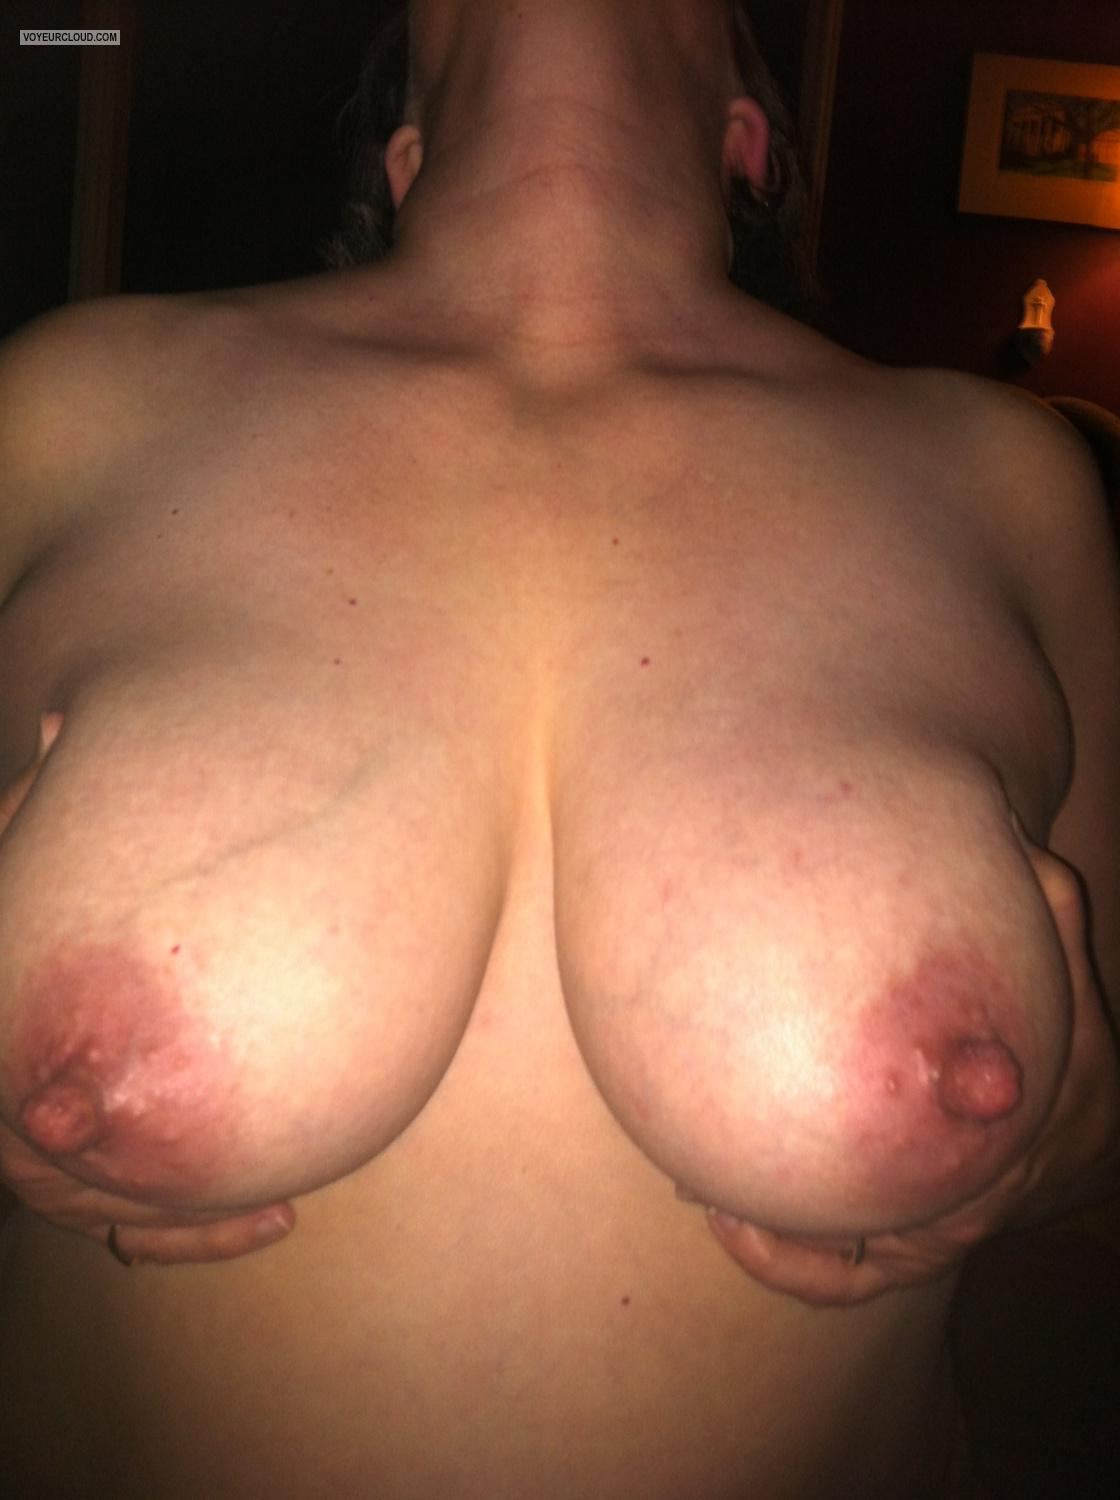 Tit Flash: Big Tits By IPhone - PoohBare from United States